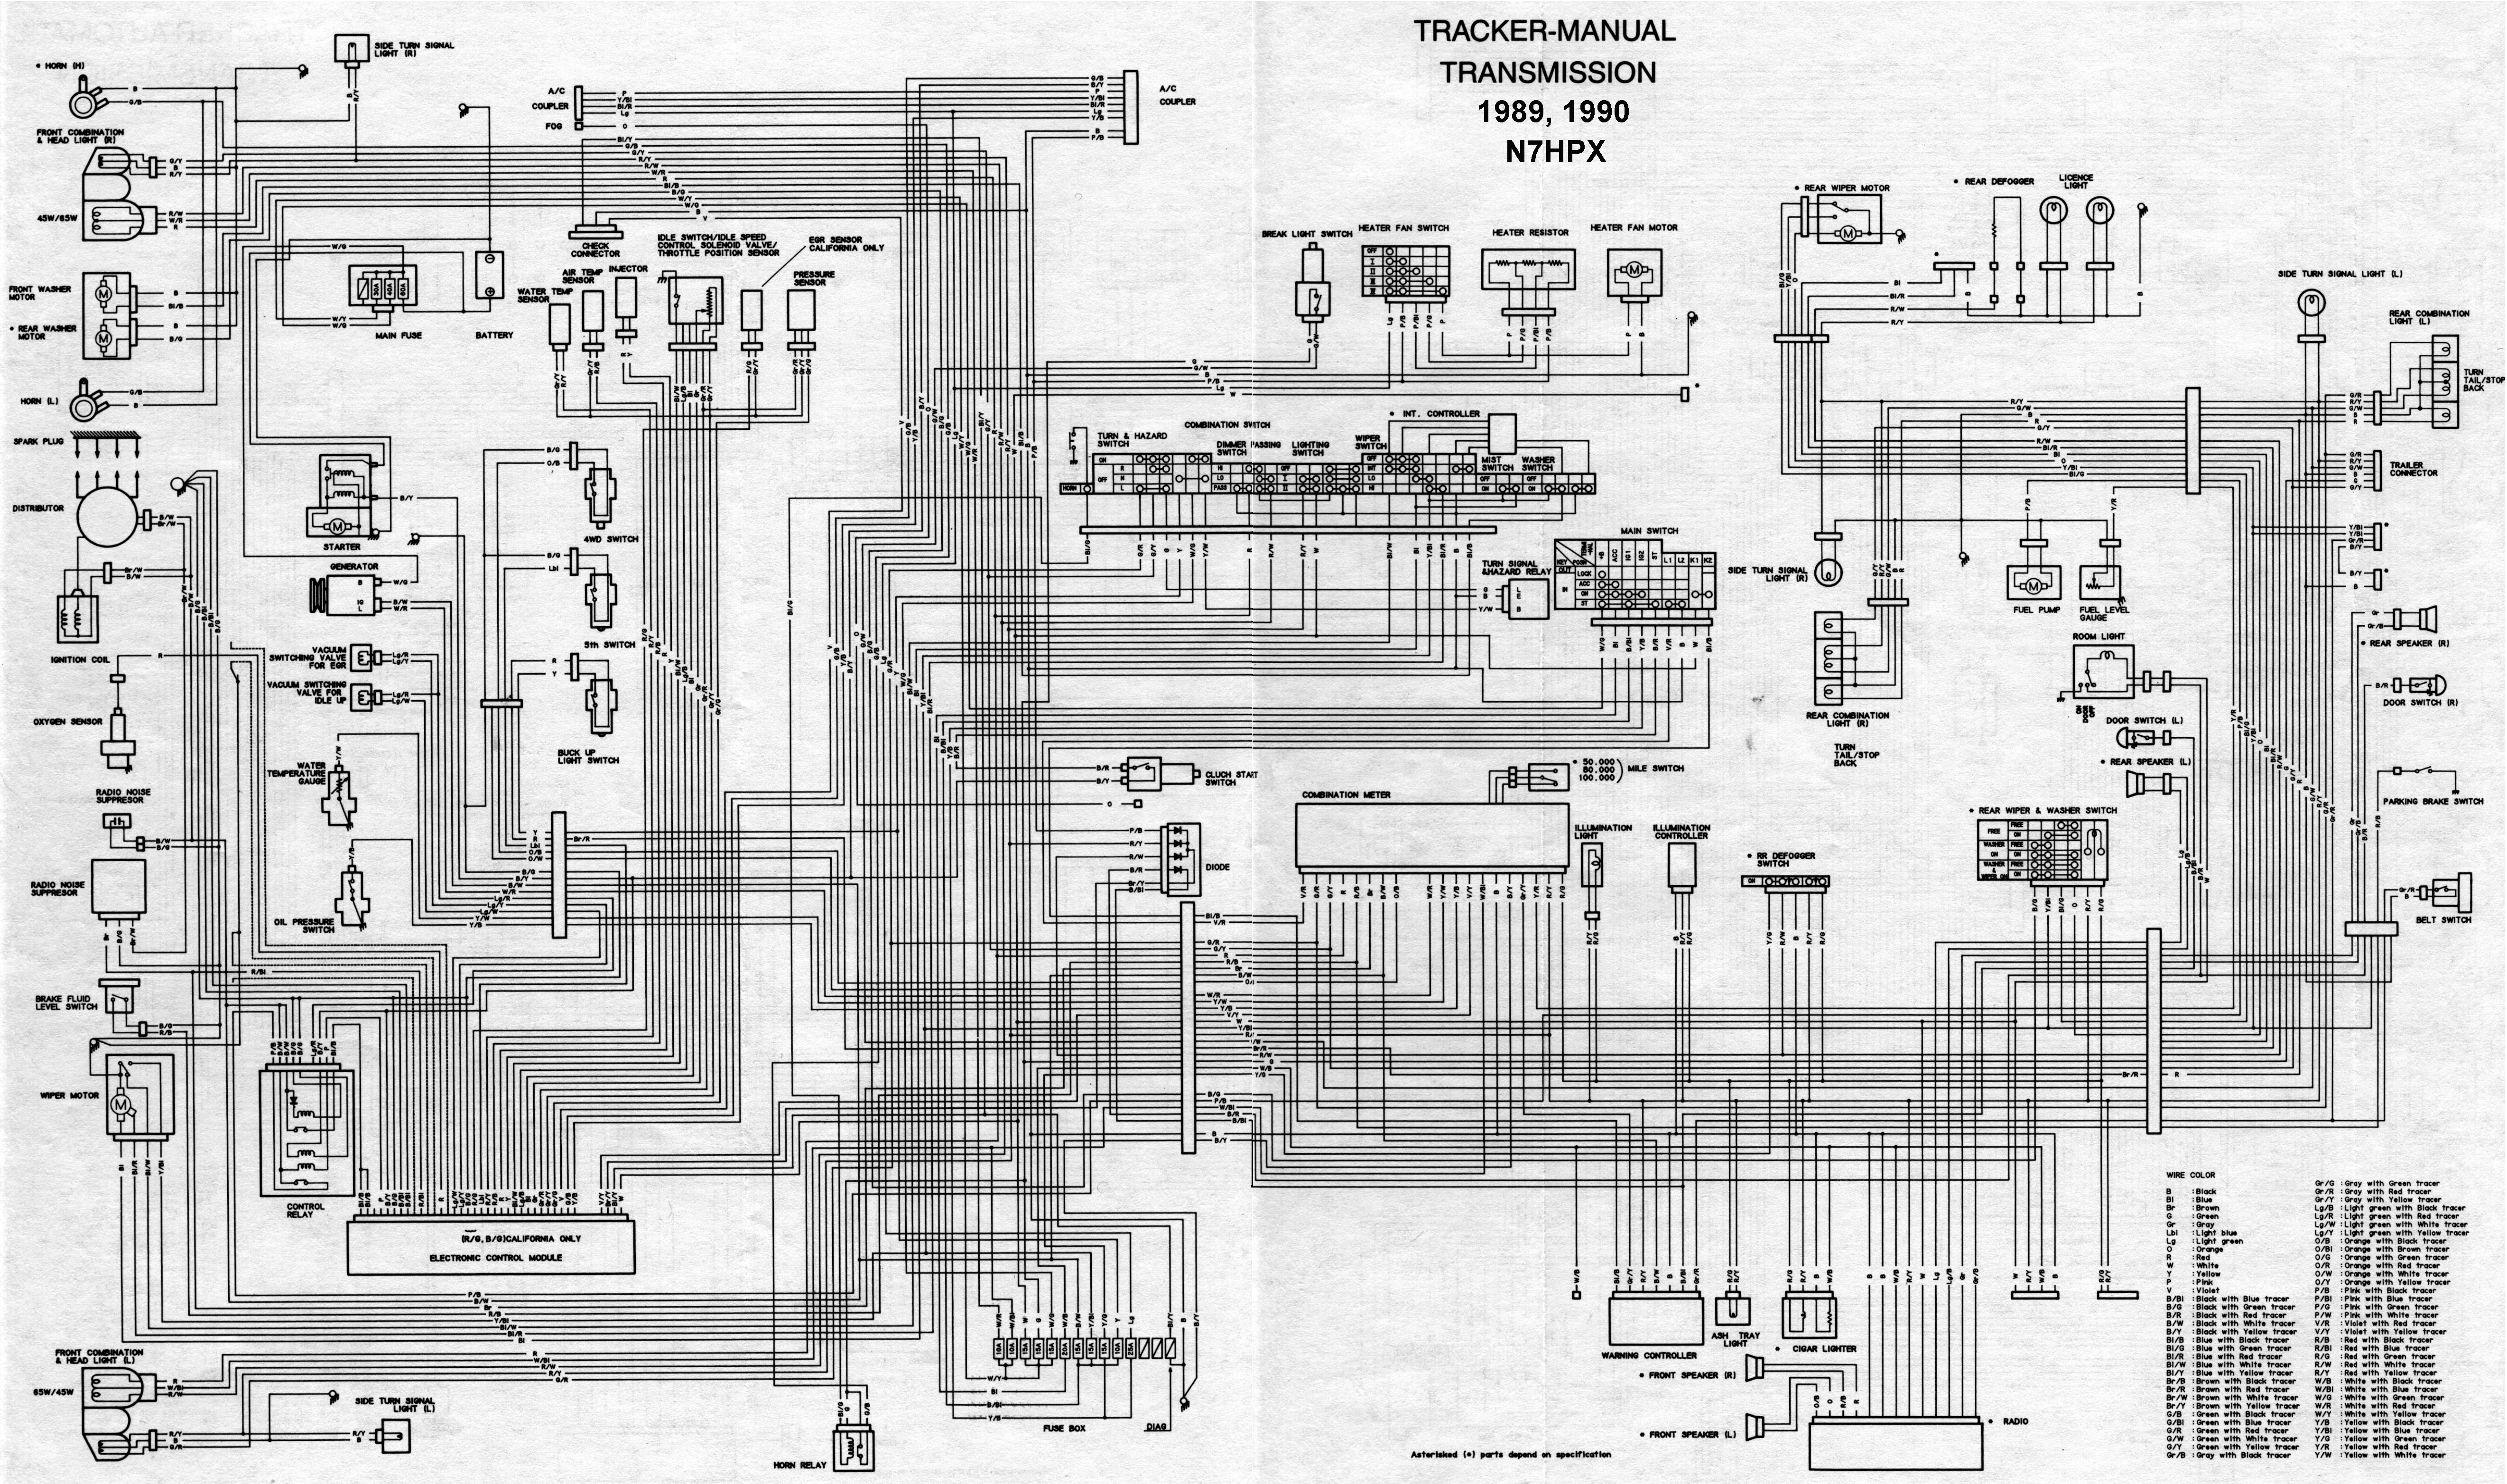 1997 suzuki sidekick wiring diagram - free download wiring, Wiring diagram